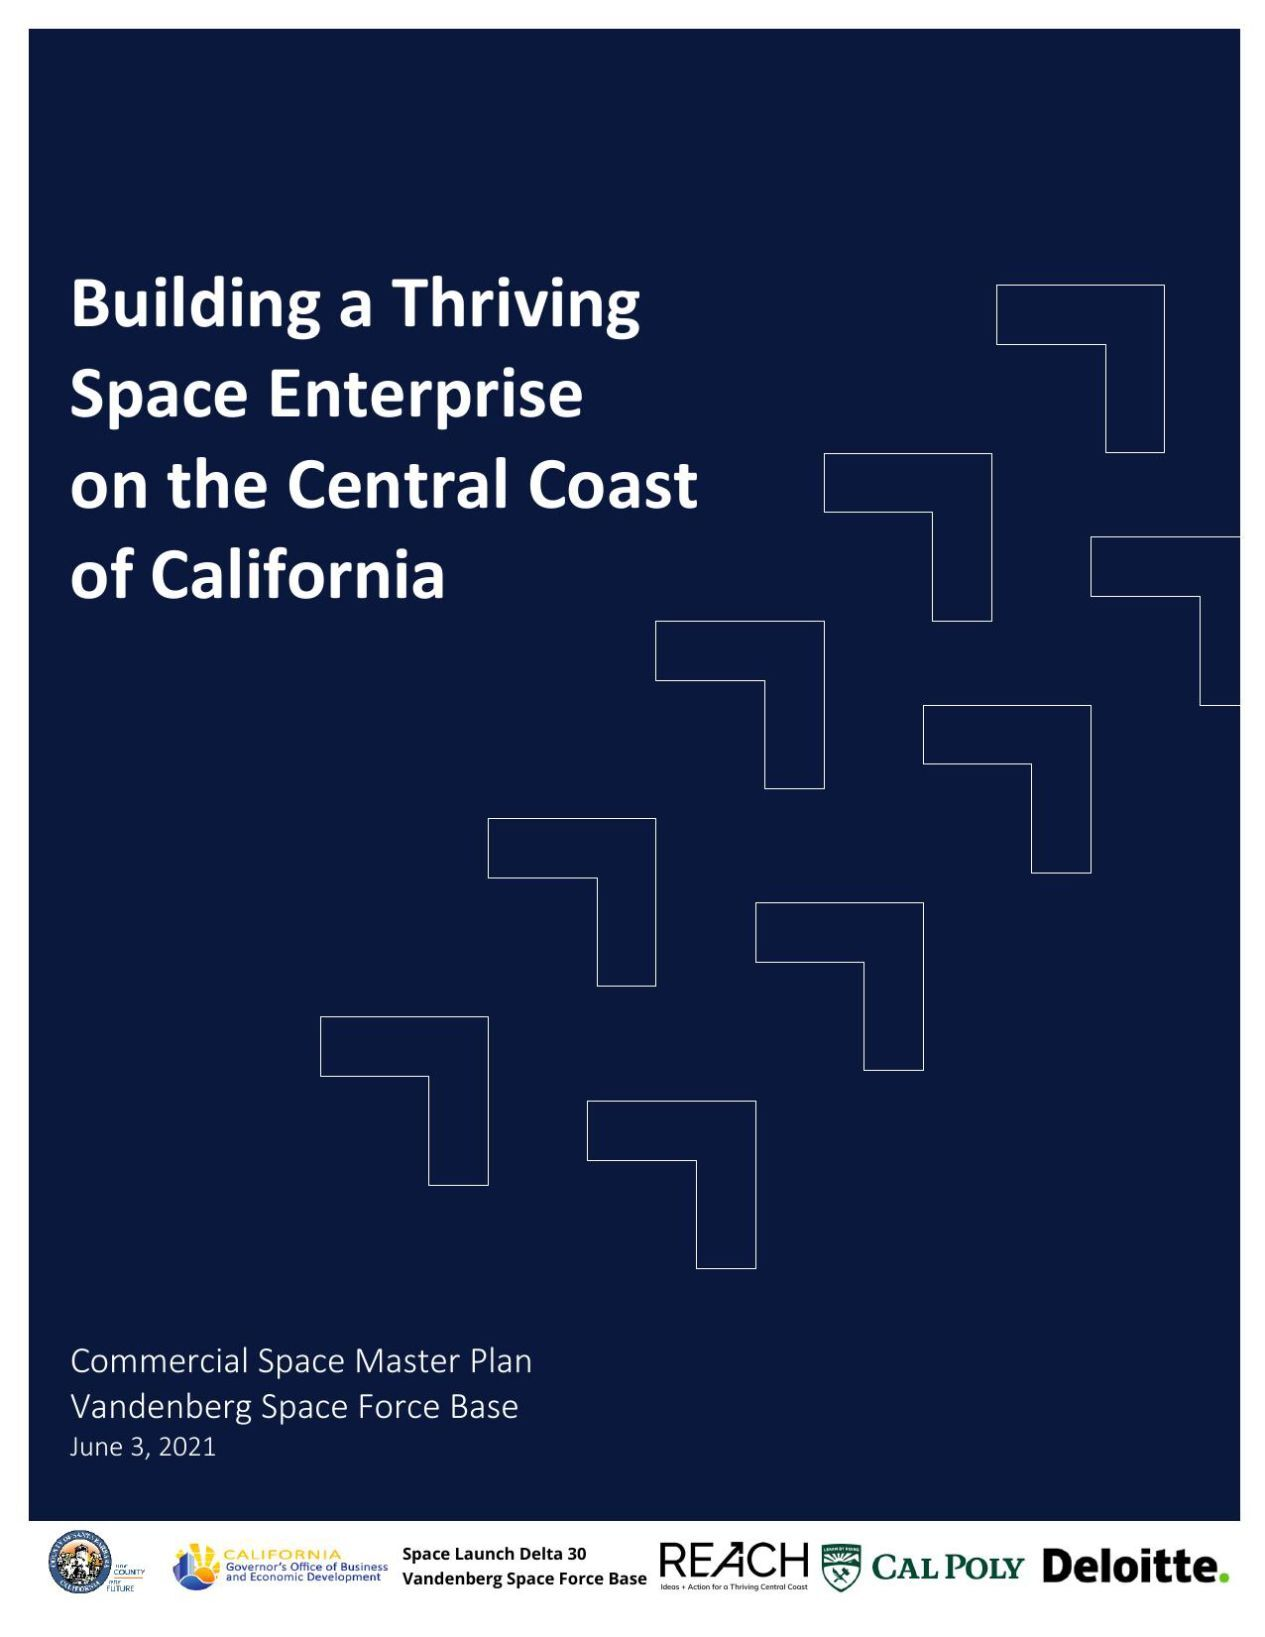 Commercial Space Master Plan